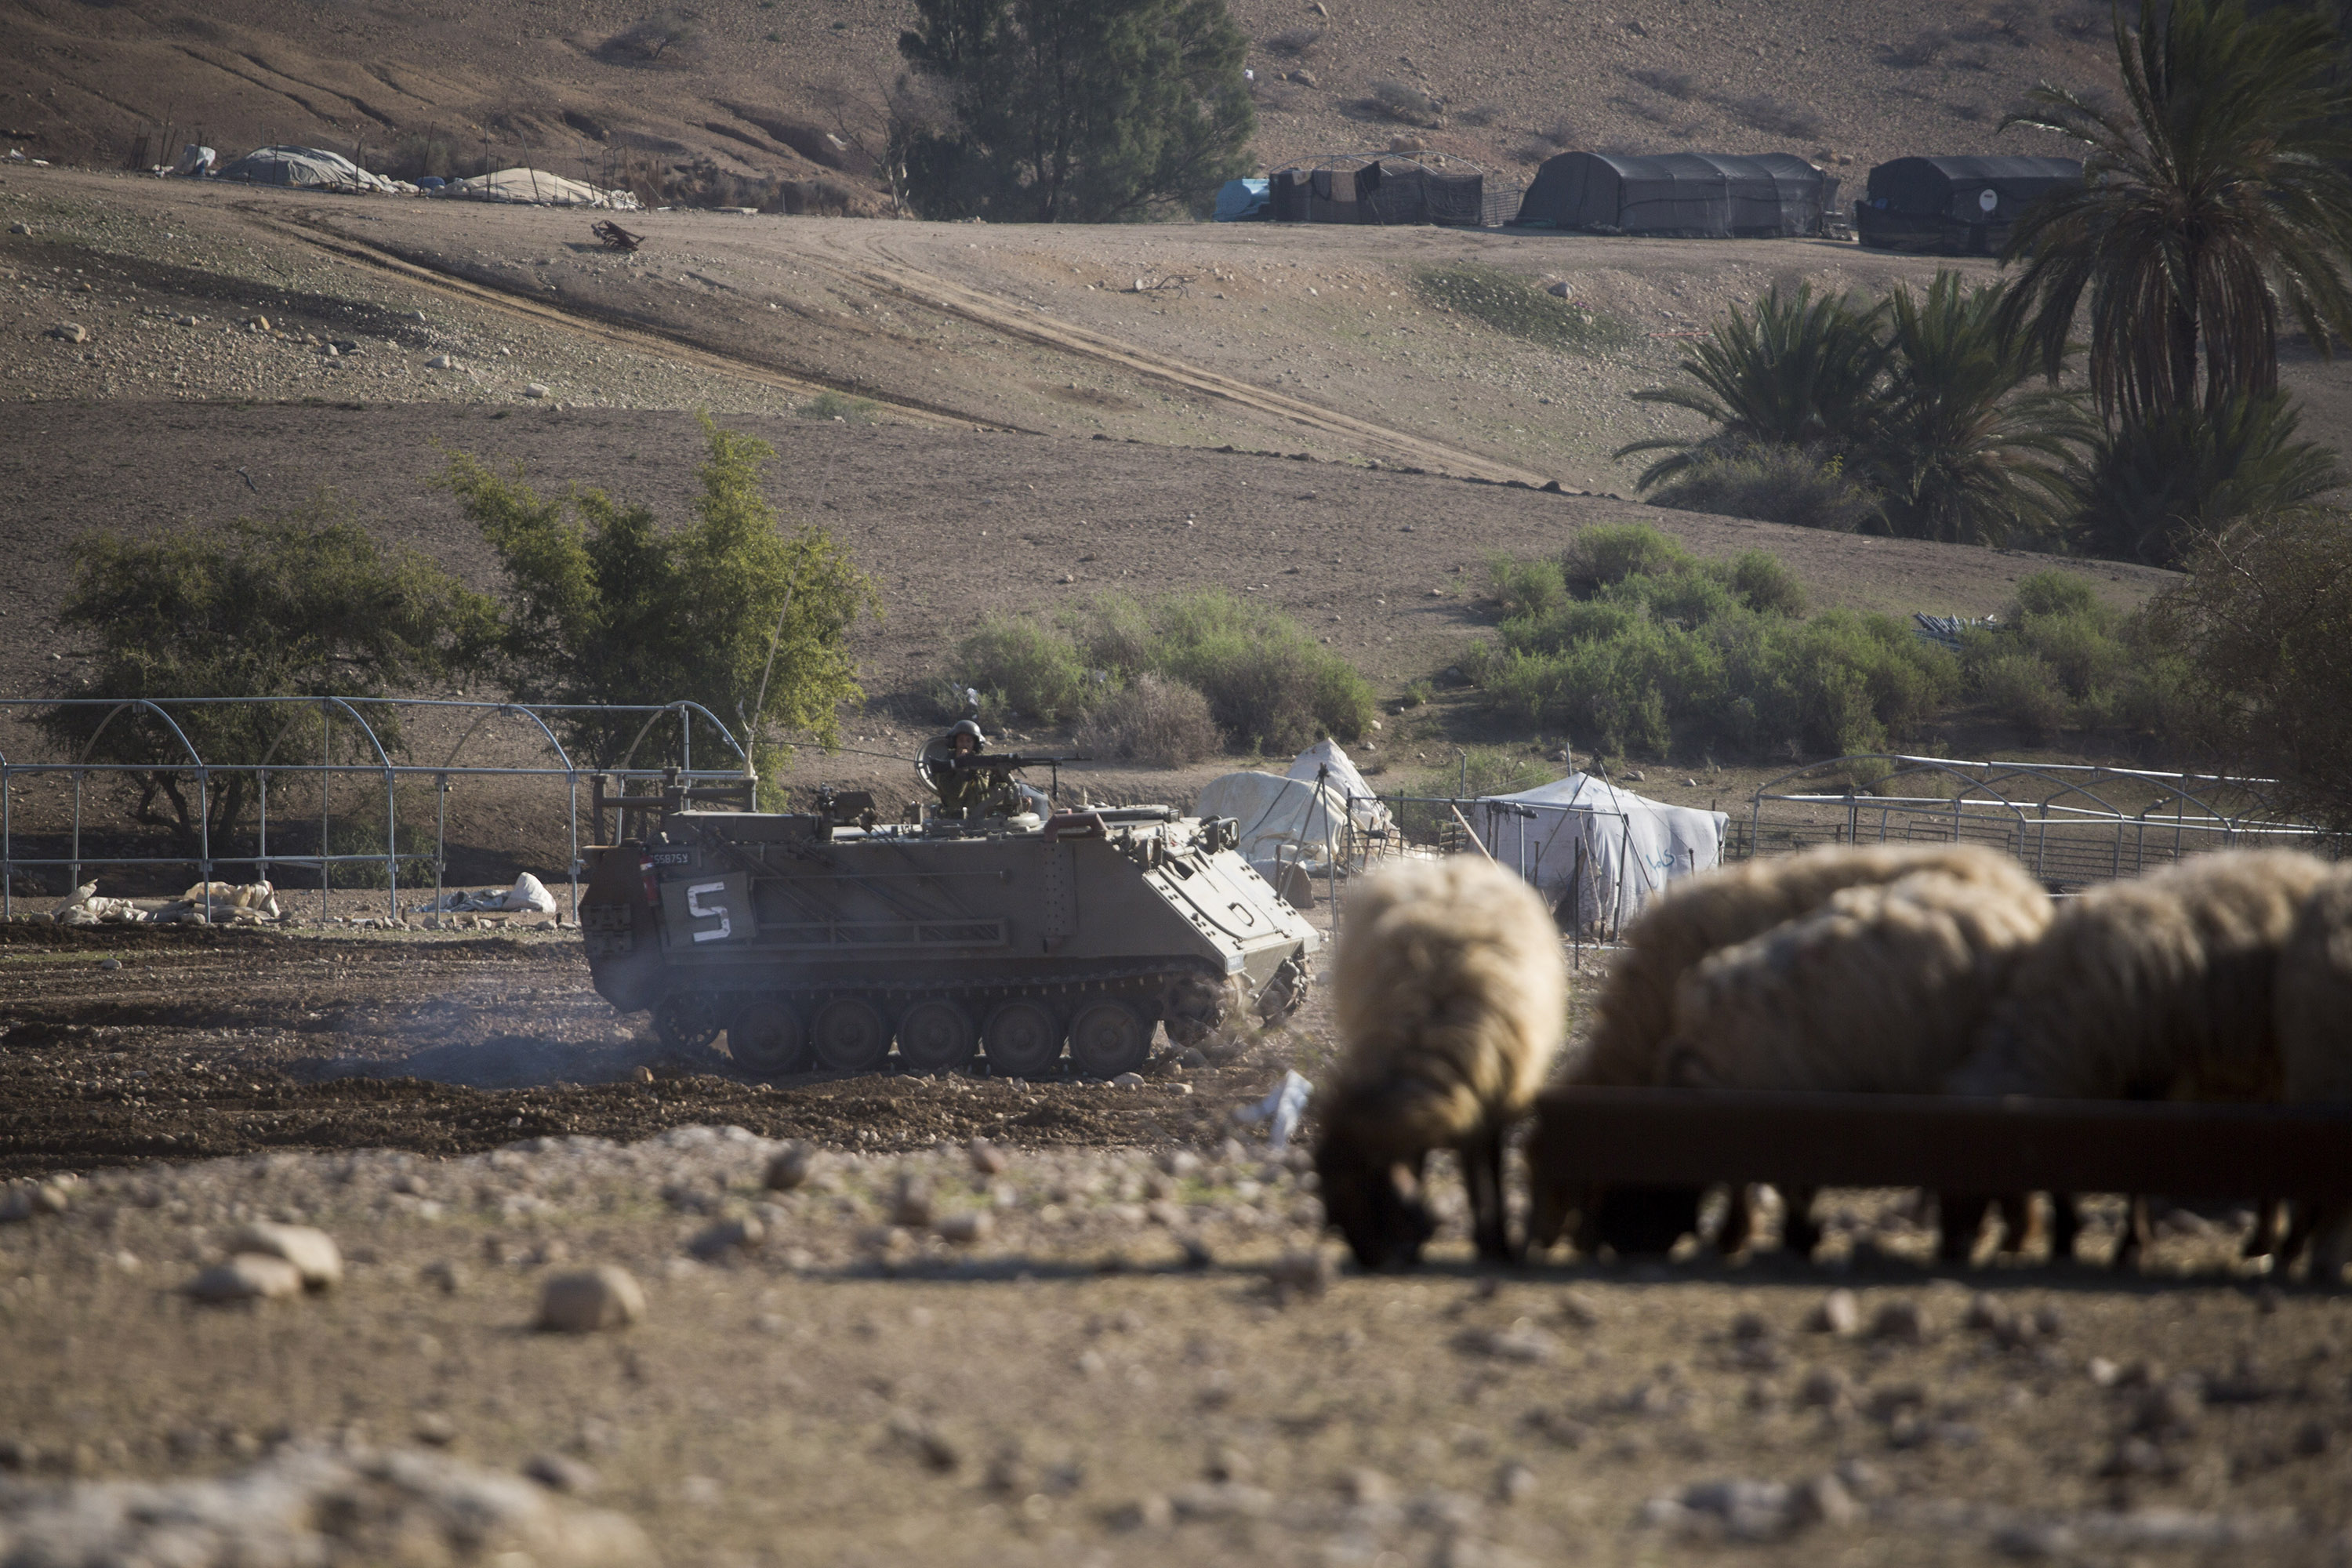 An Israeli army vehicle passes next to a Palestinian family compound during an Israeli military training in the northern Jordan valley in the occupied West Bank. (Photo: Activestills / Keren Manor)